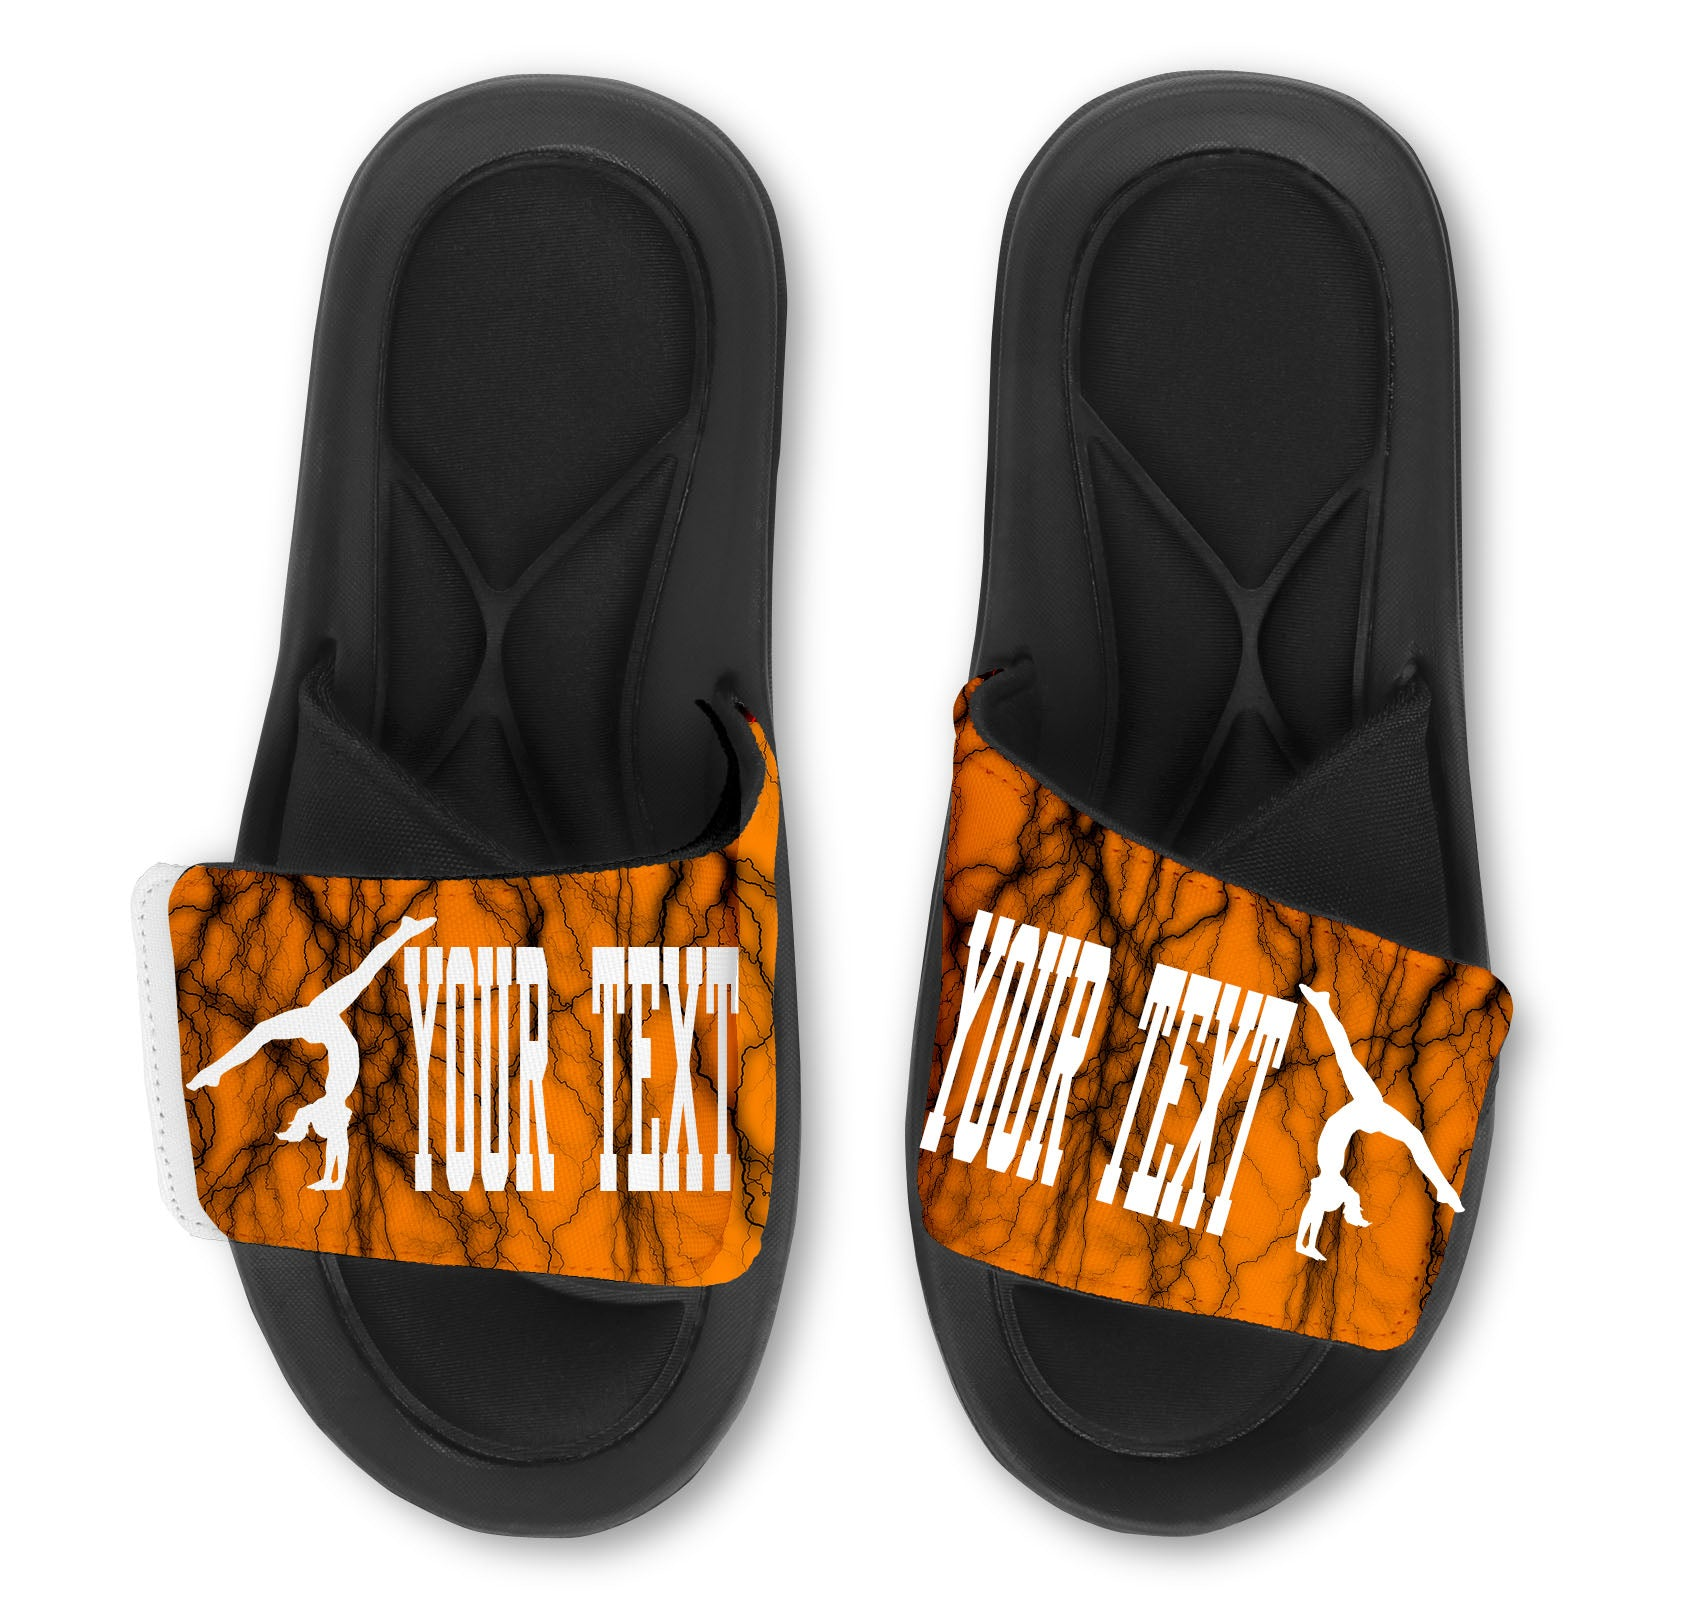 Gymnastics Handstand Custom Slides / Sandals -Lightning